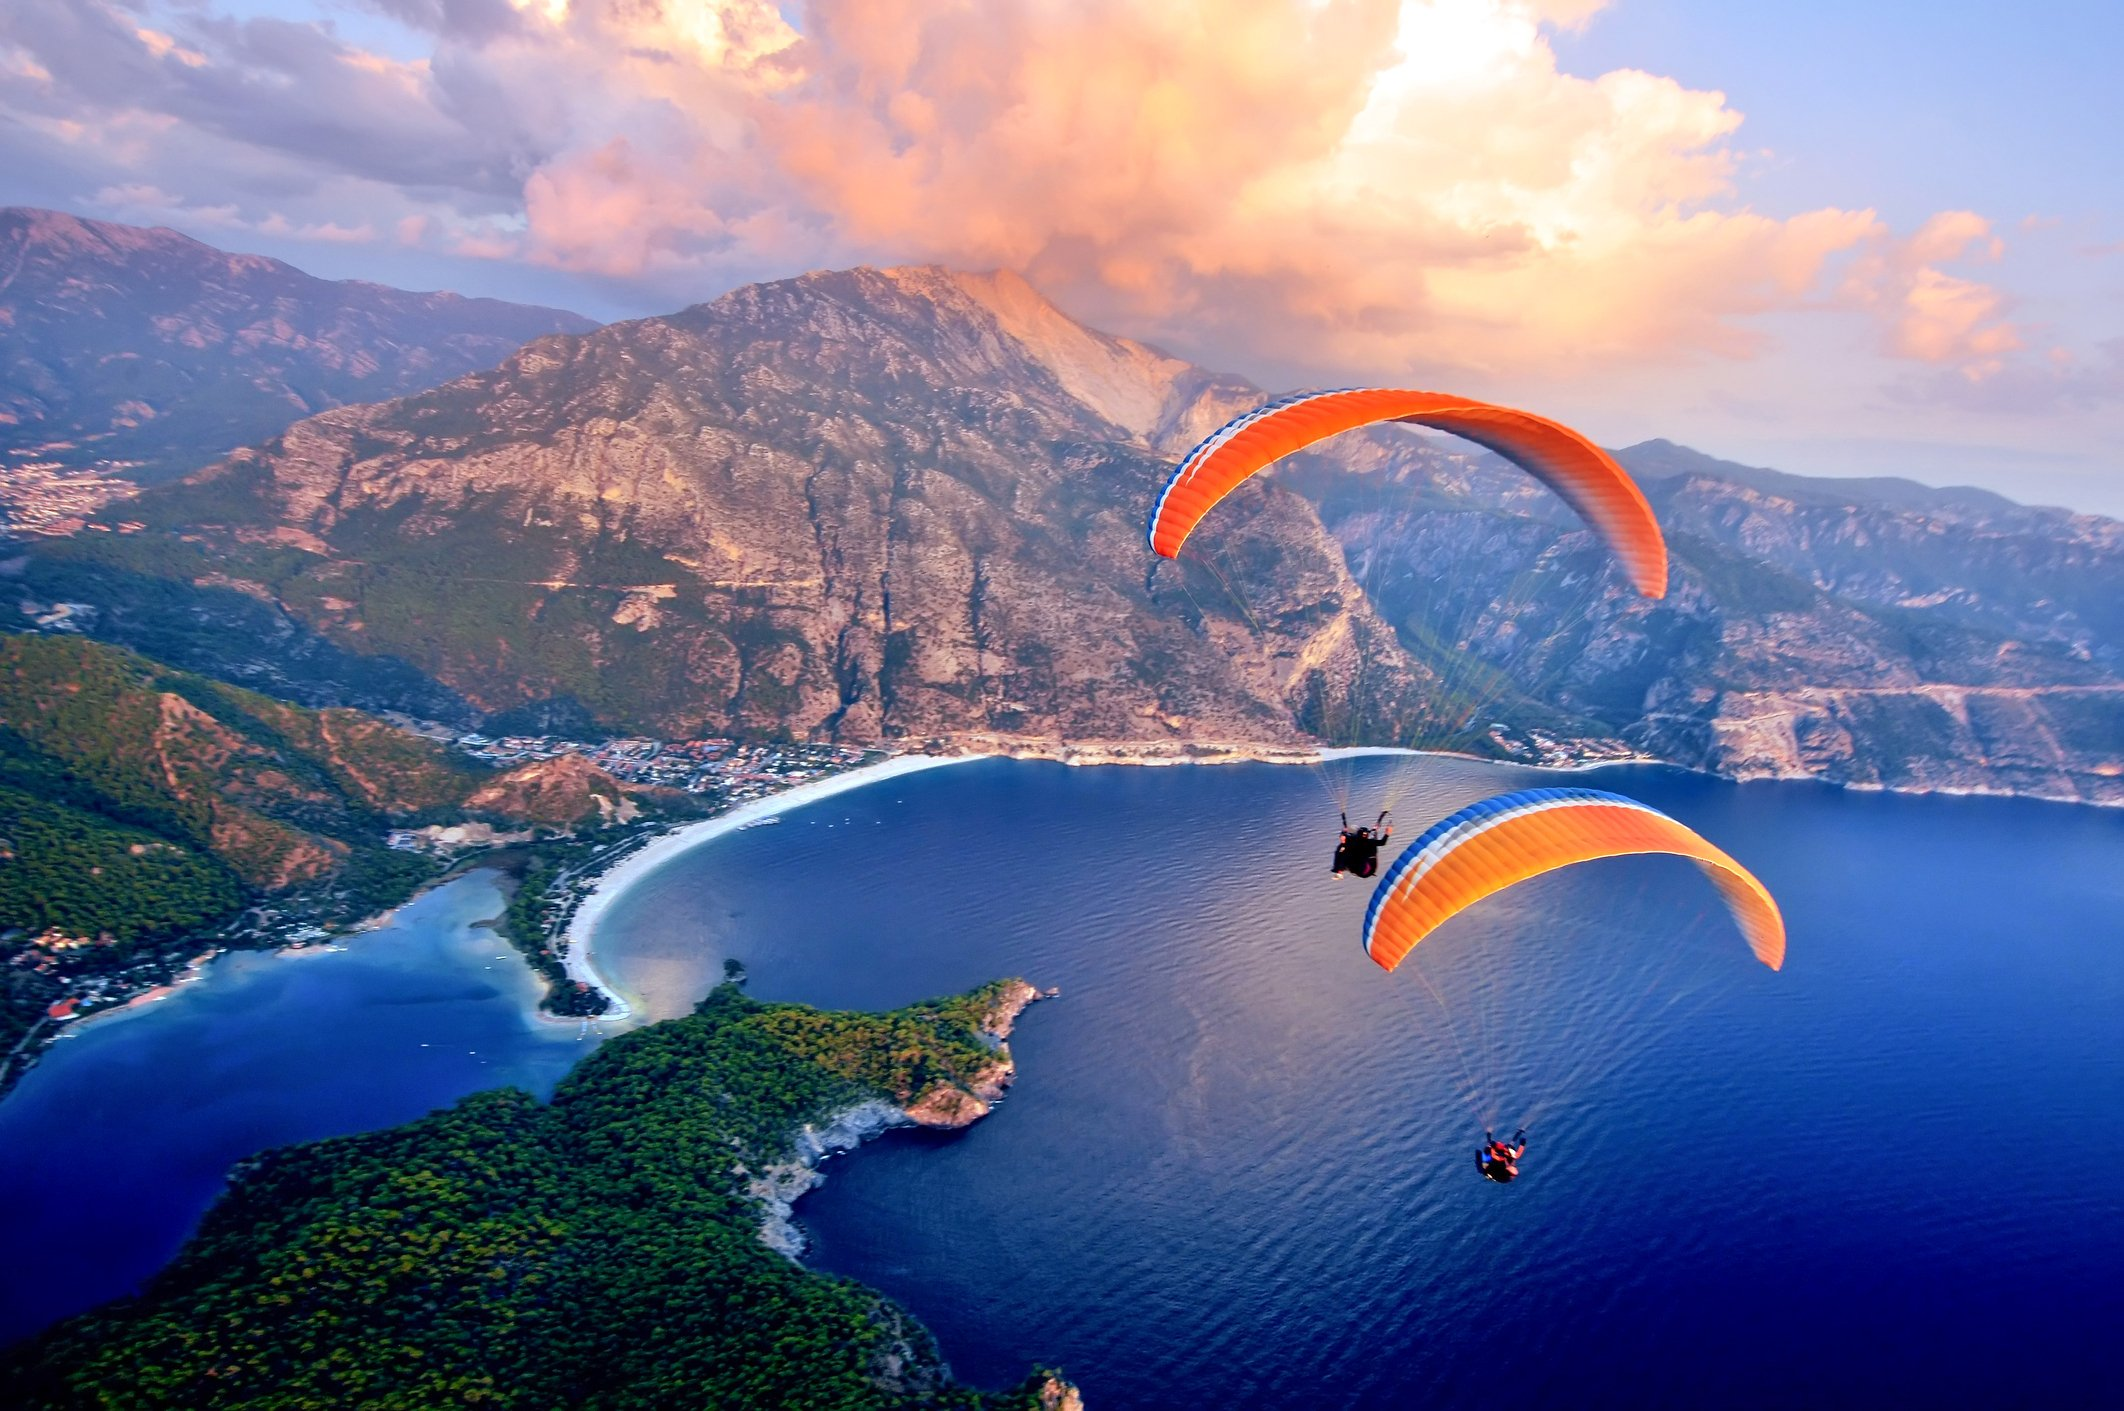 Paragliding into the sunset over Ölüdeniz in Fethiye should be on every adventurer's bucket list. (Kenan Olgun / iStock)